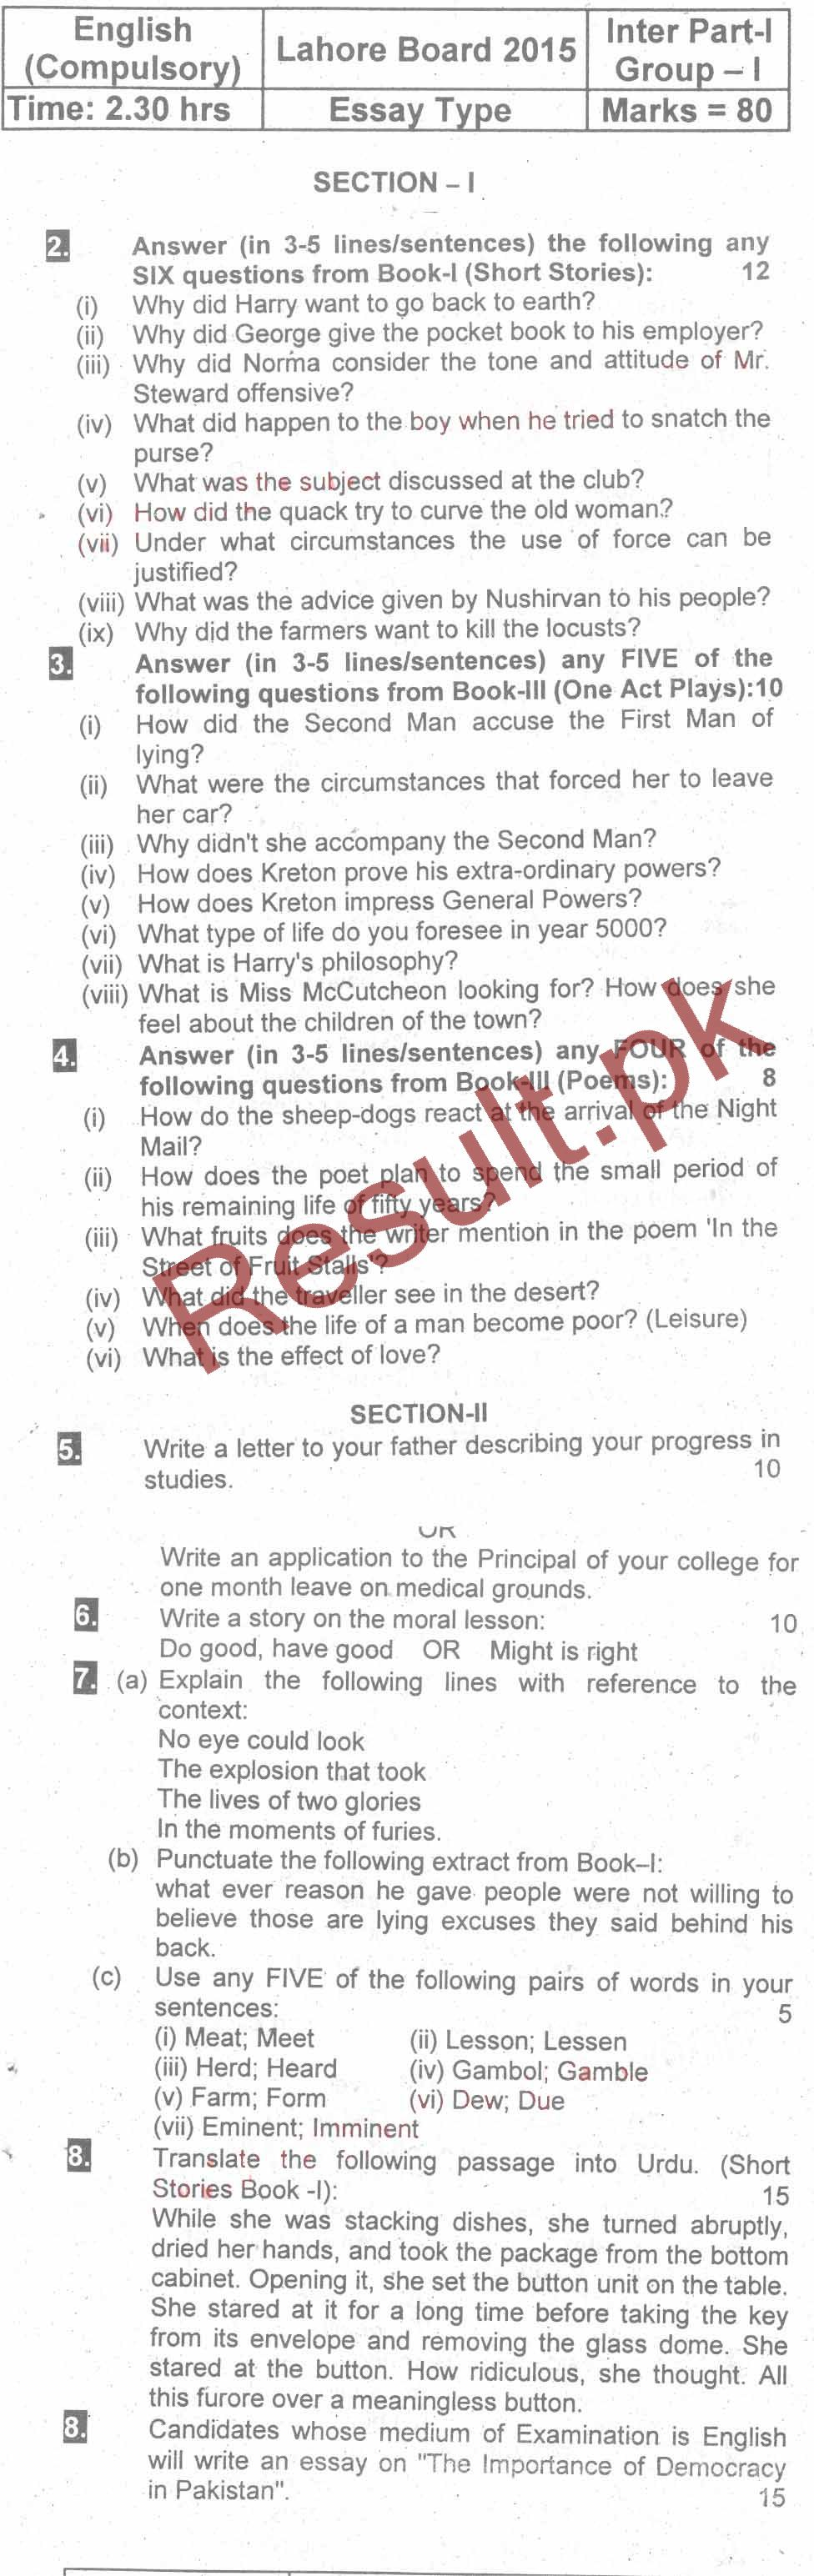 Inter Part 1, 2 English Past Papers 2016 Lahore Board 1st Year, 12th Class